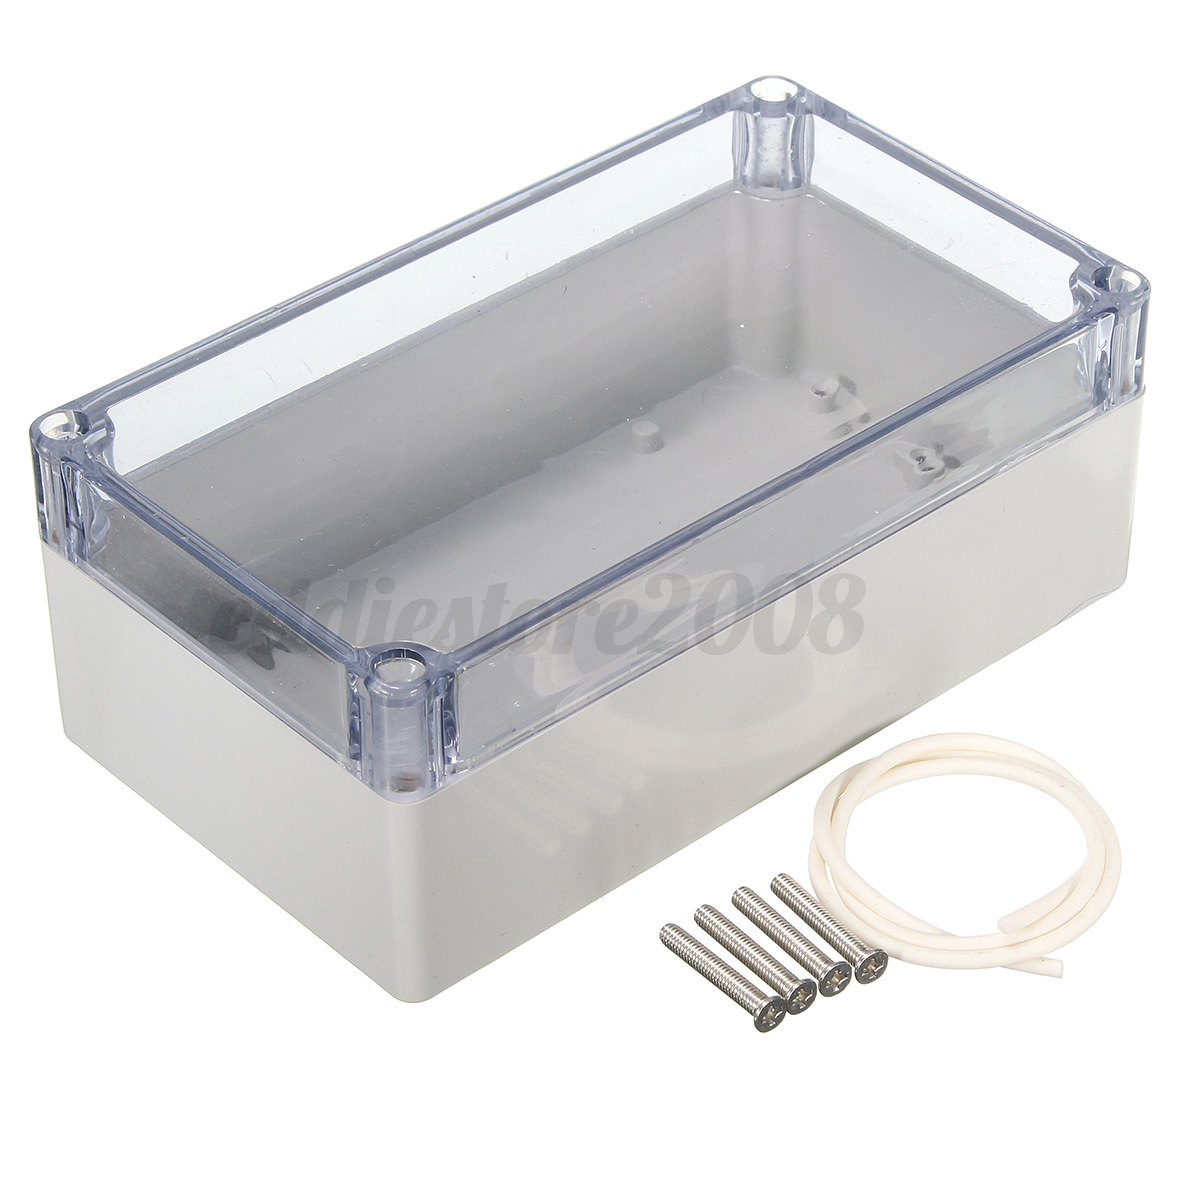 Waterproof Clear Cover Electronic Project Box Enclosure